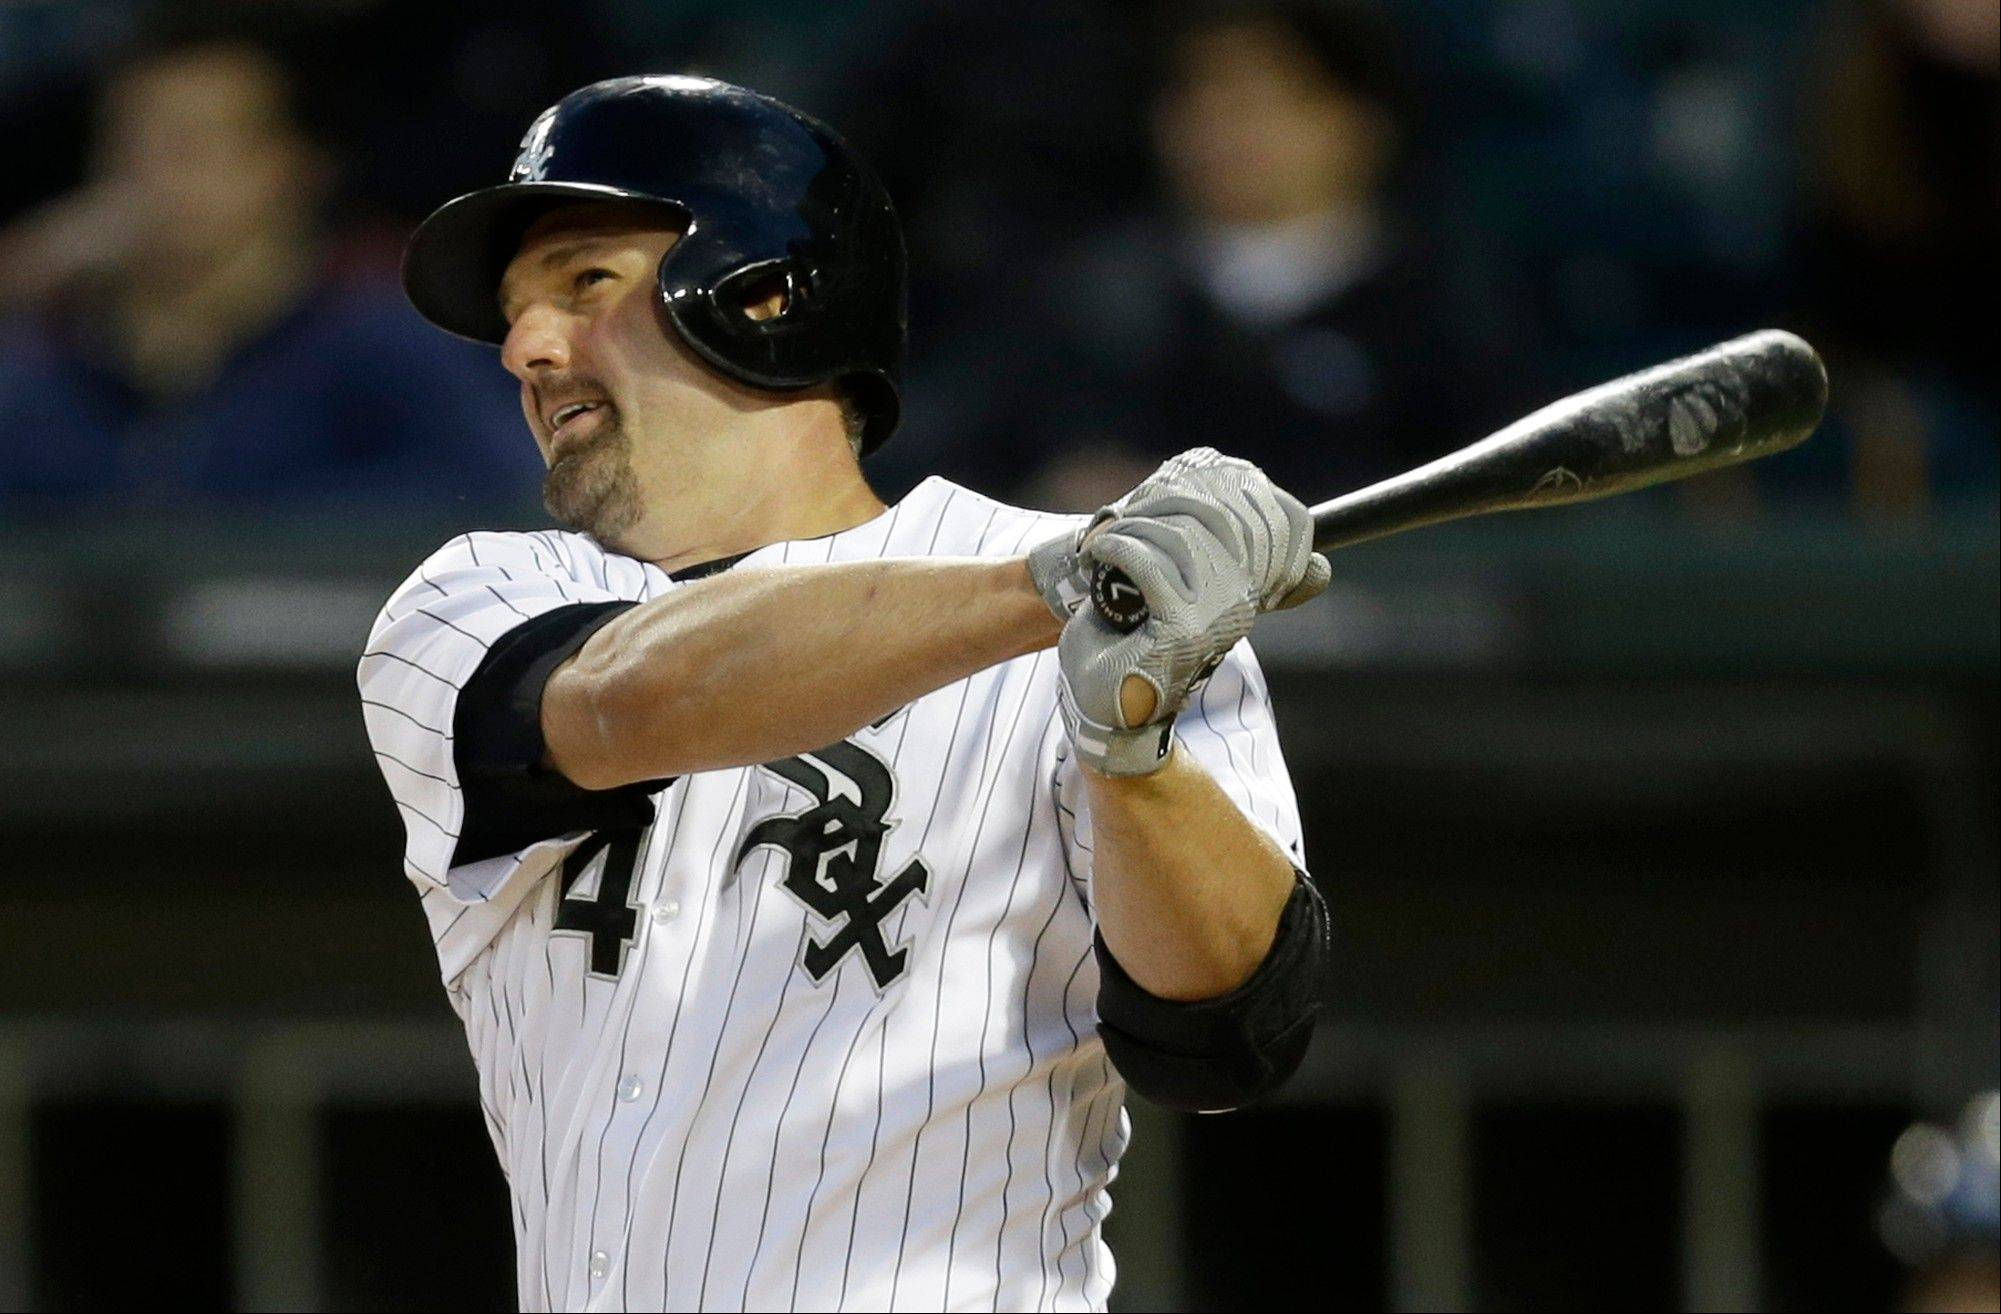 Chicago White Sox's Paul Konerko hits a single during the fifth inning of an interleague baseball game against the Miami Marlins, Friday, May 24, 2013, in Chicago.